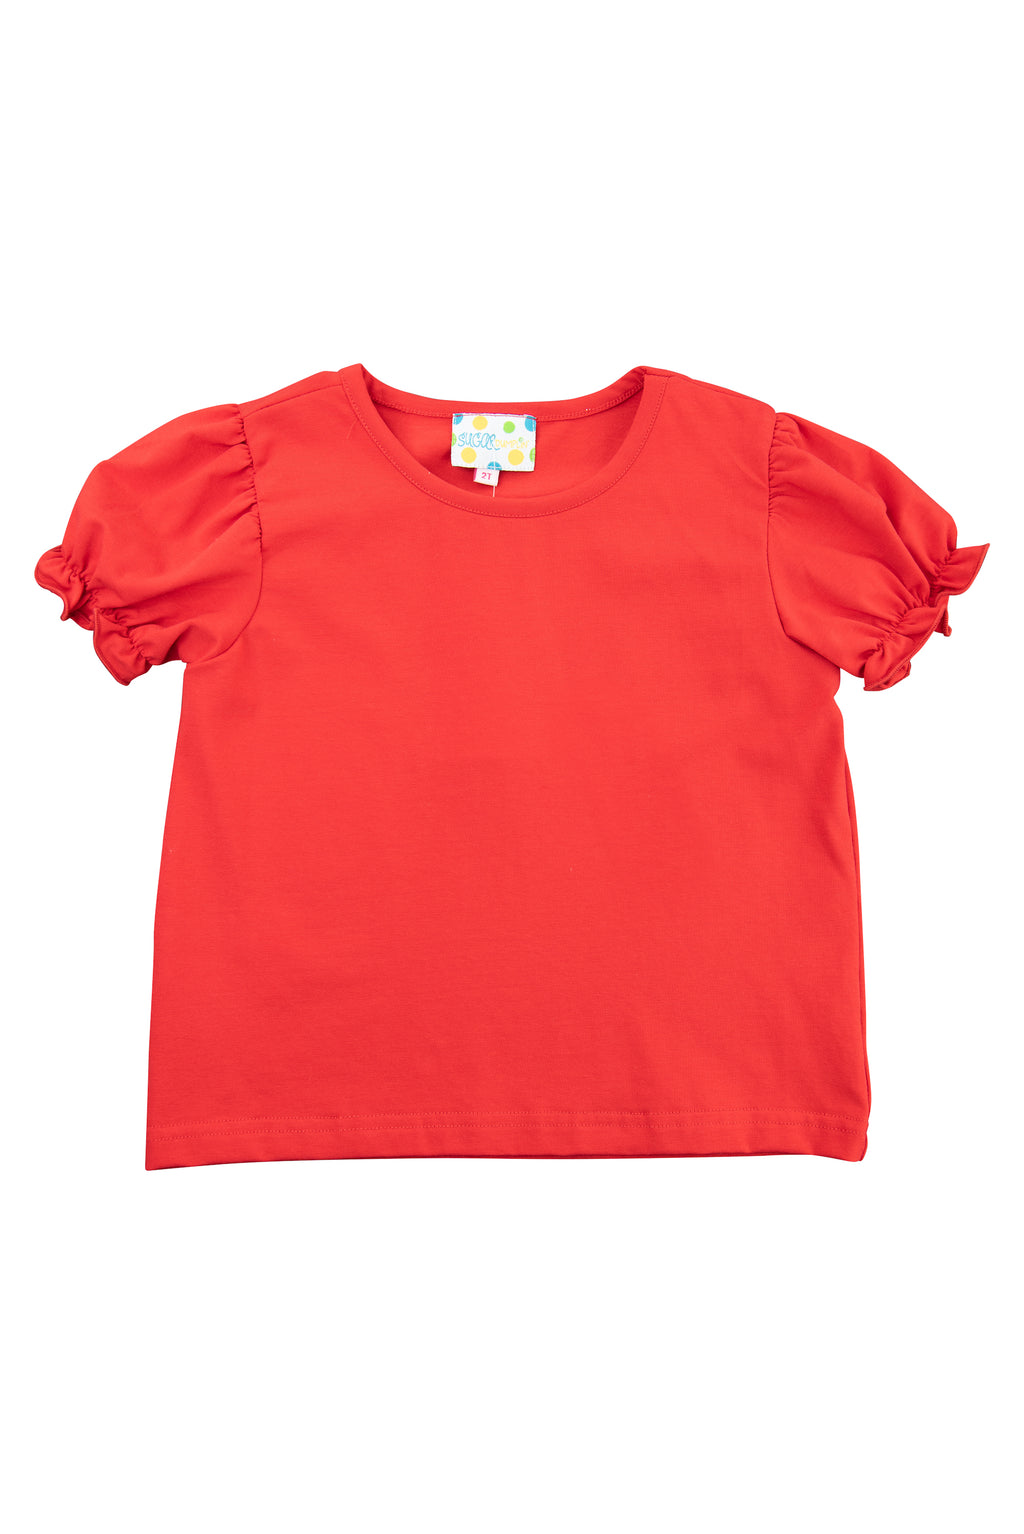 Girls Red Shirt Only